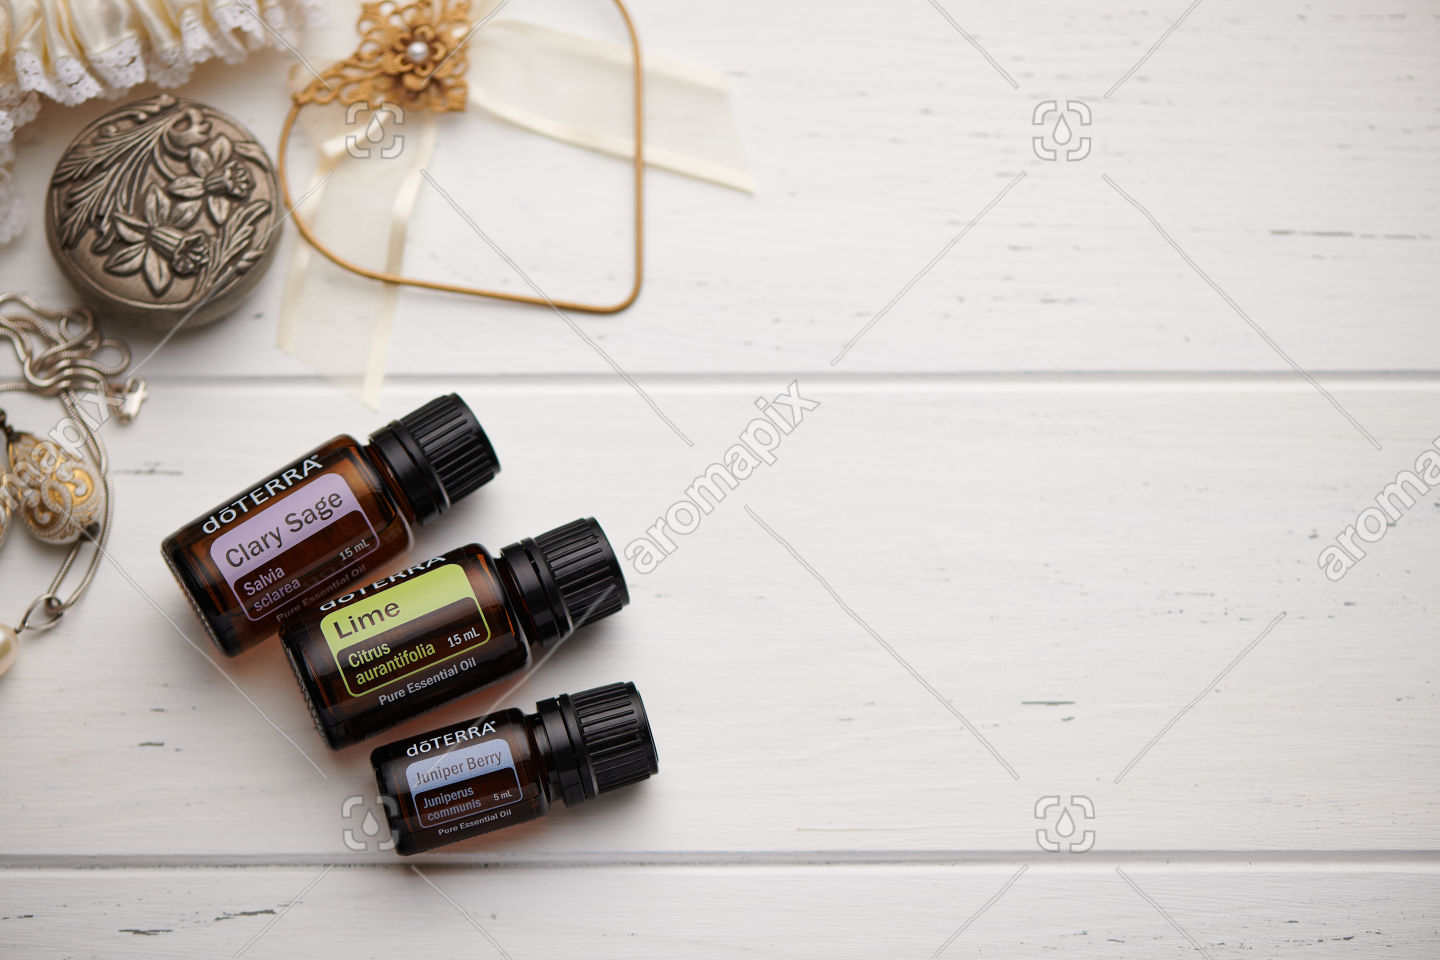 doTERRA Clary Sage, Lime and Juniper Berry on white background